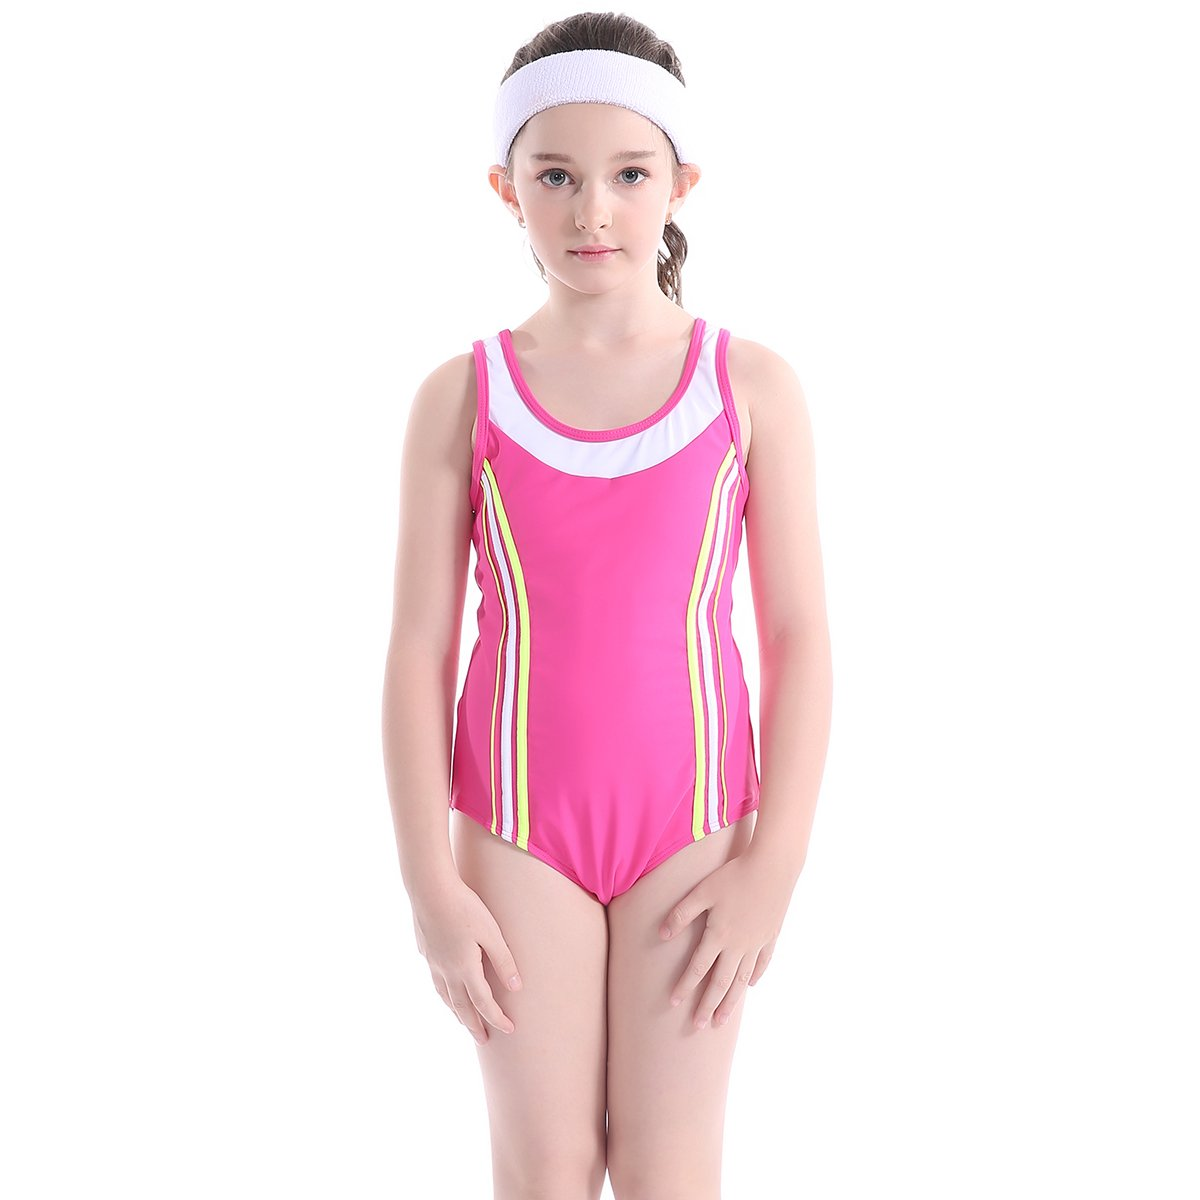 TenMet Girl's Athletic One Piece Sport Swimsuit Professional Competitive Swimwear Training Surfing Swimming Racer Back